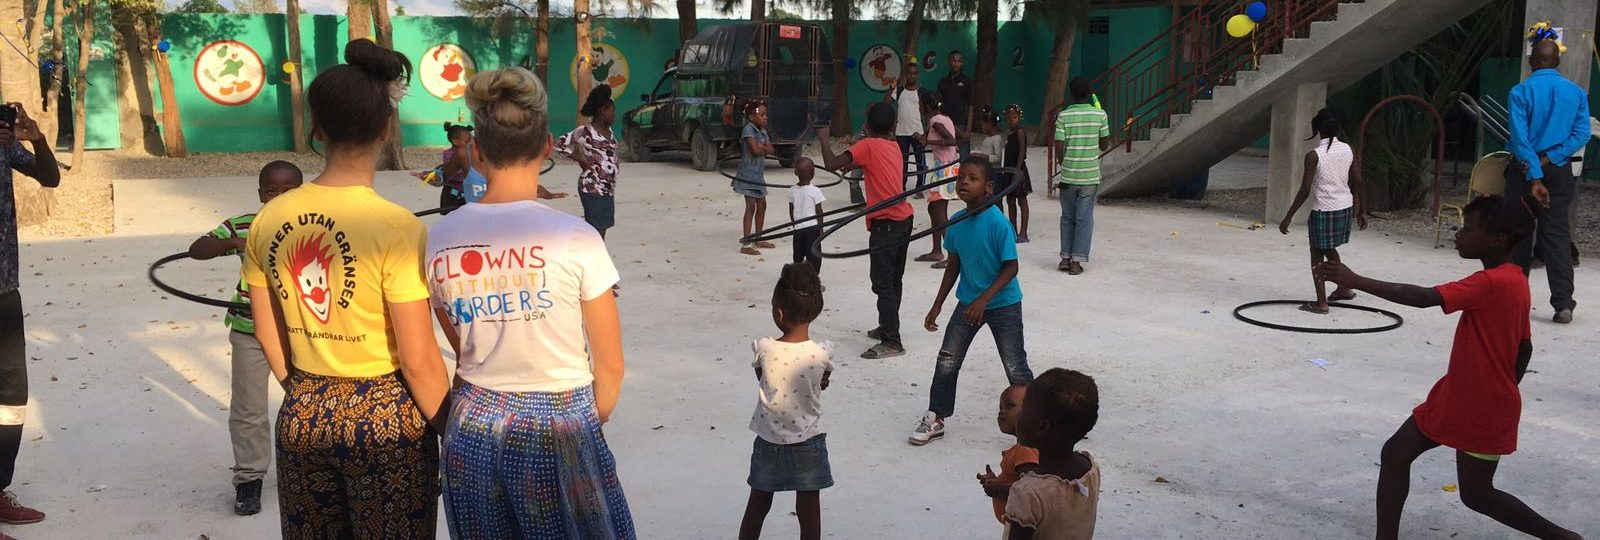 Clowns watch children play with hula hoops